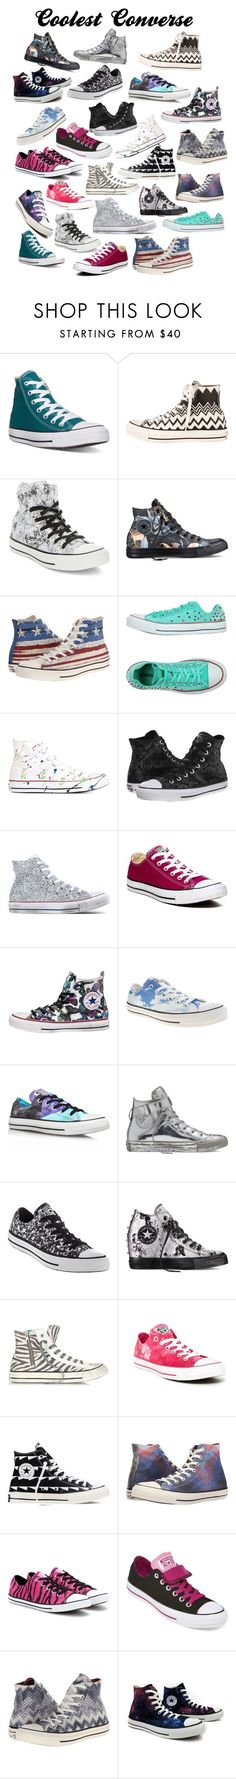 """Coolest Converse"" by kaytaydel27 ❤ liked on Polyvore featuring Converse"